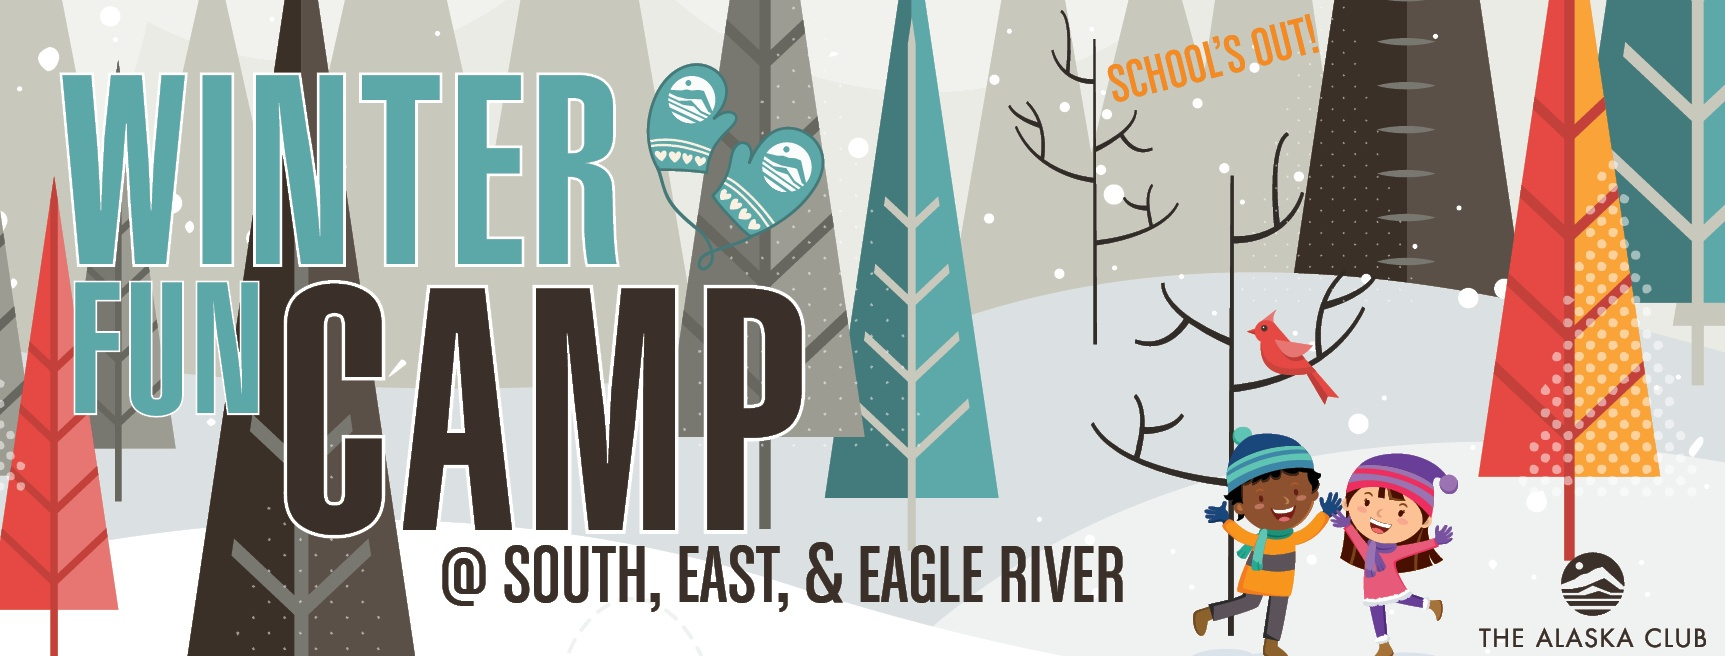 Card #1697 Winter Fun Camp Signage-FBbanner.jpg